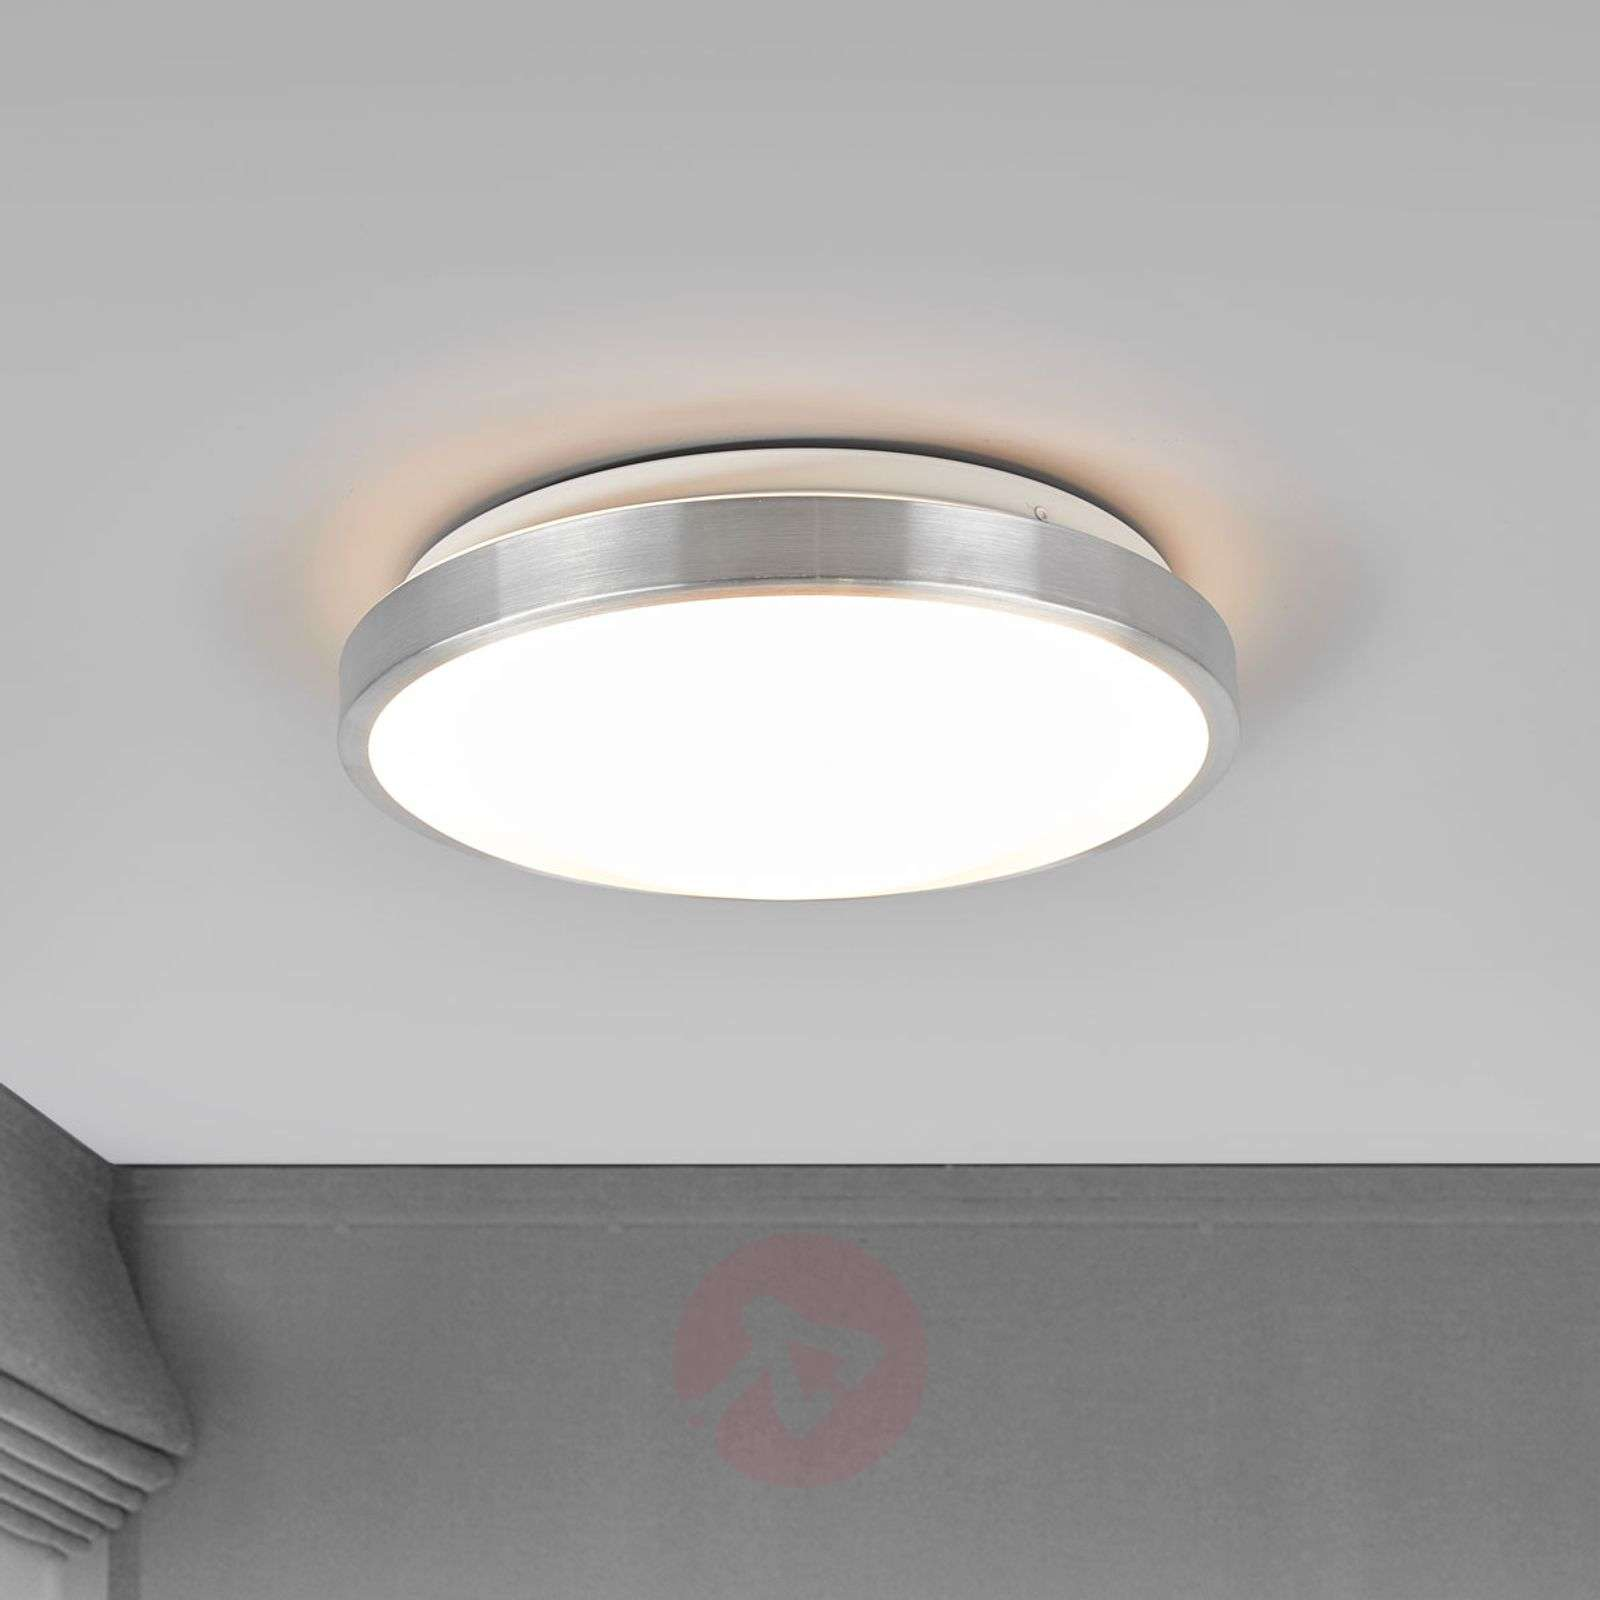 LED ceiling light Jasmin, aluminium-coloured frame | Lights.co.uk